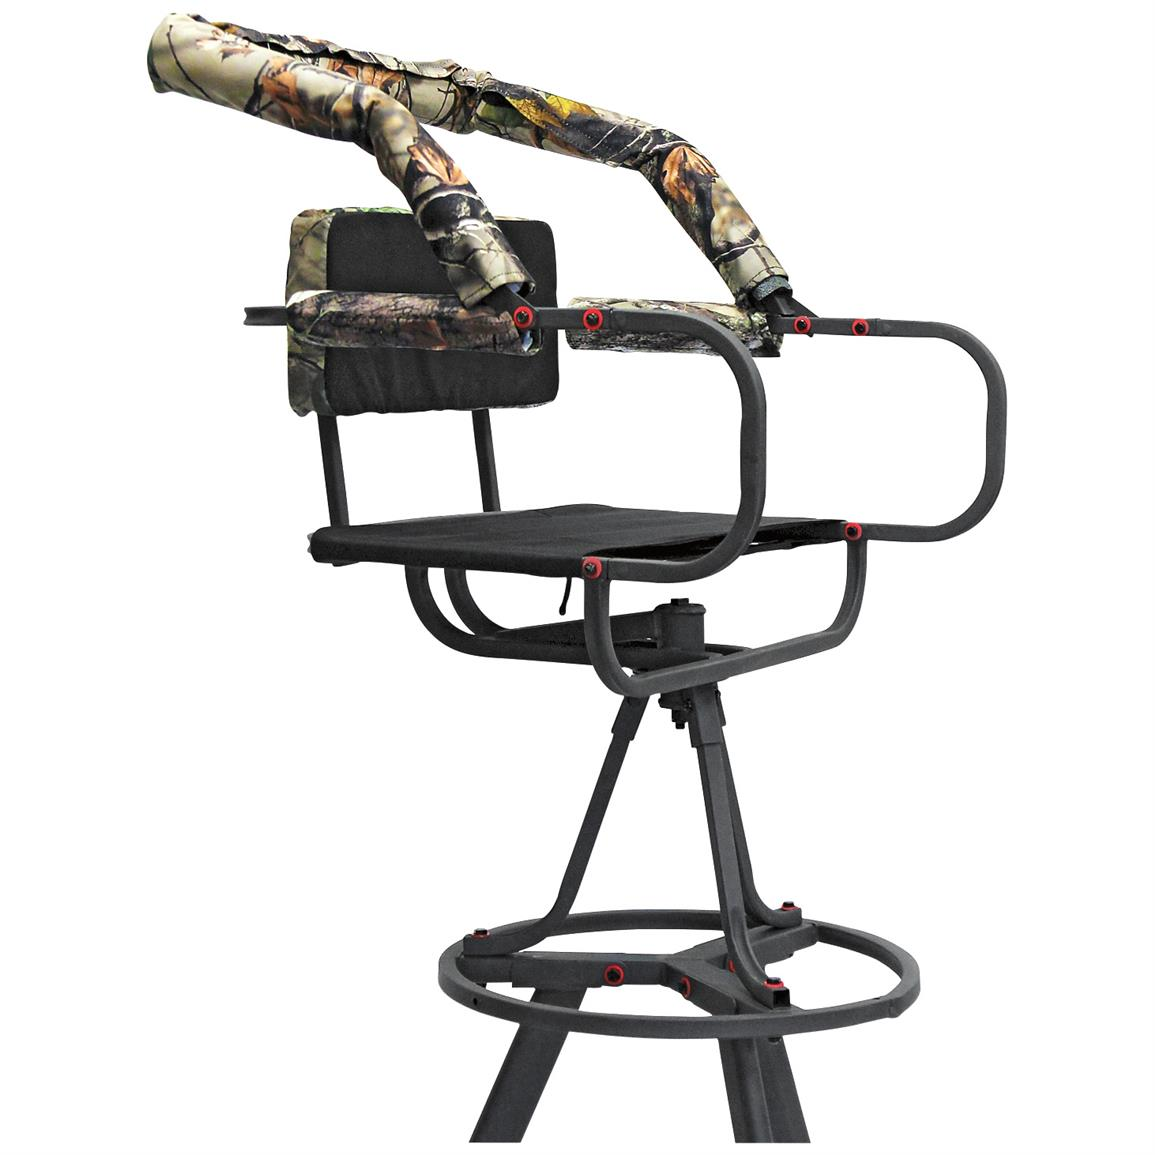 360 Degree swivel seat allows for comfortable shooting in all directions